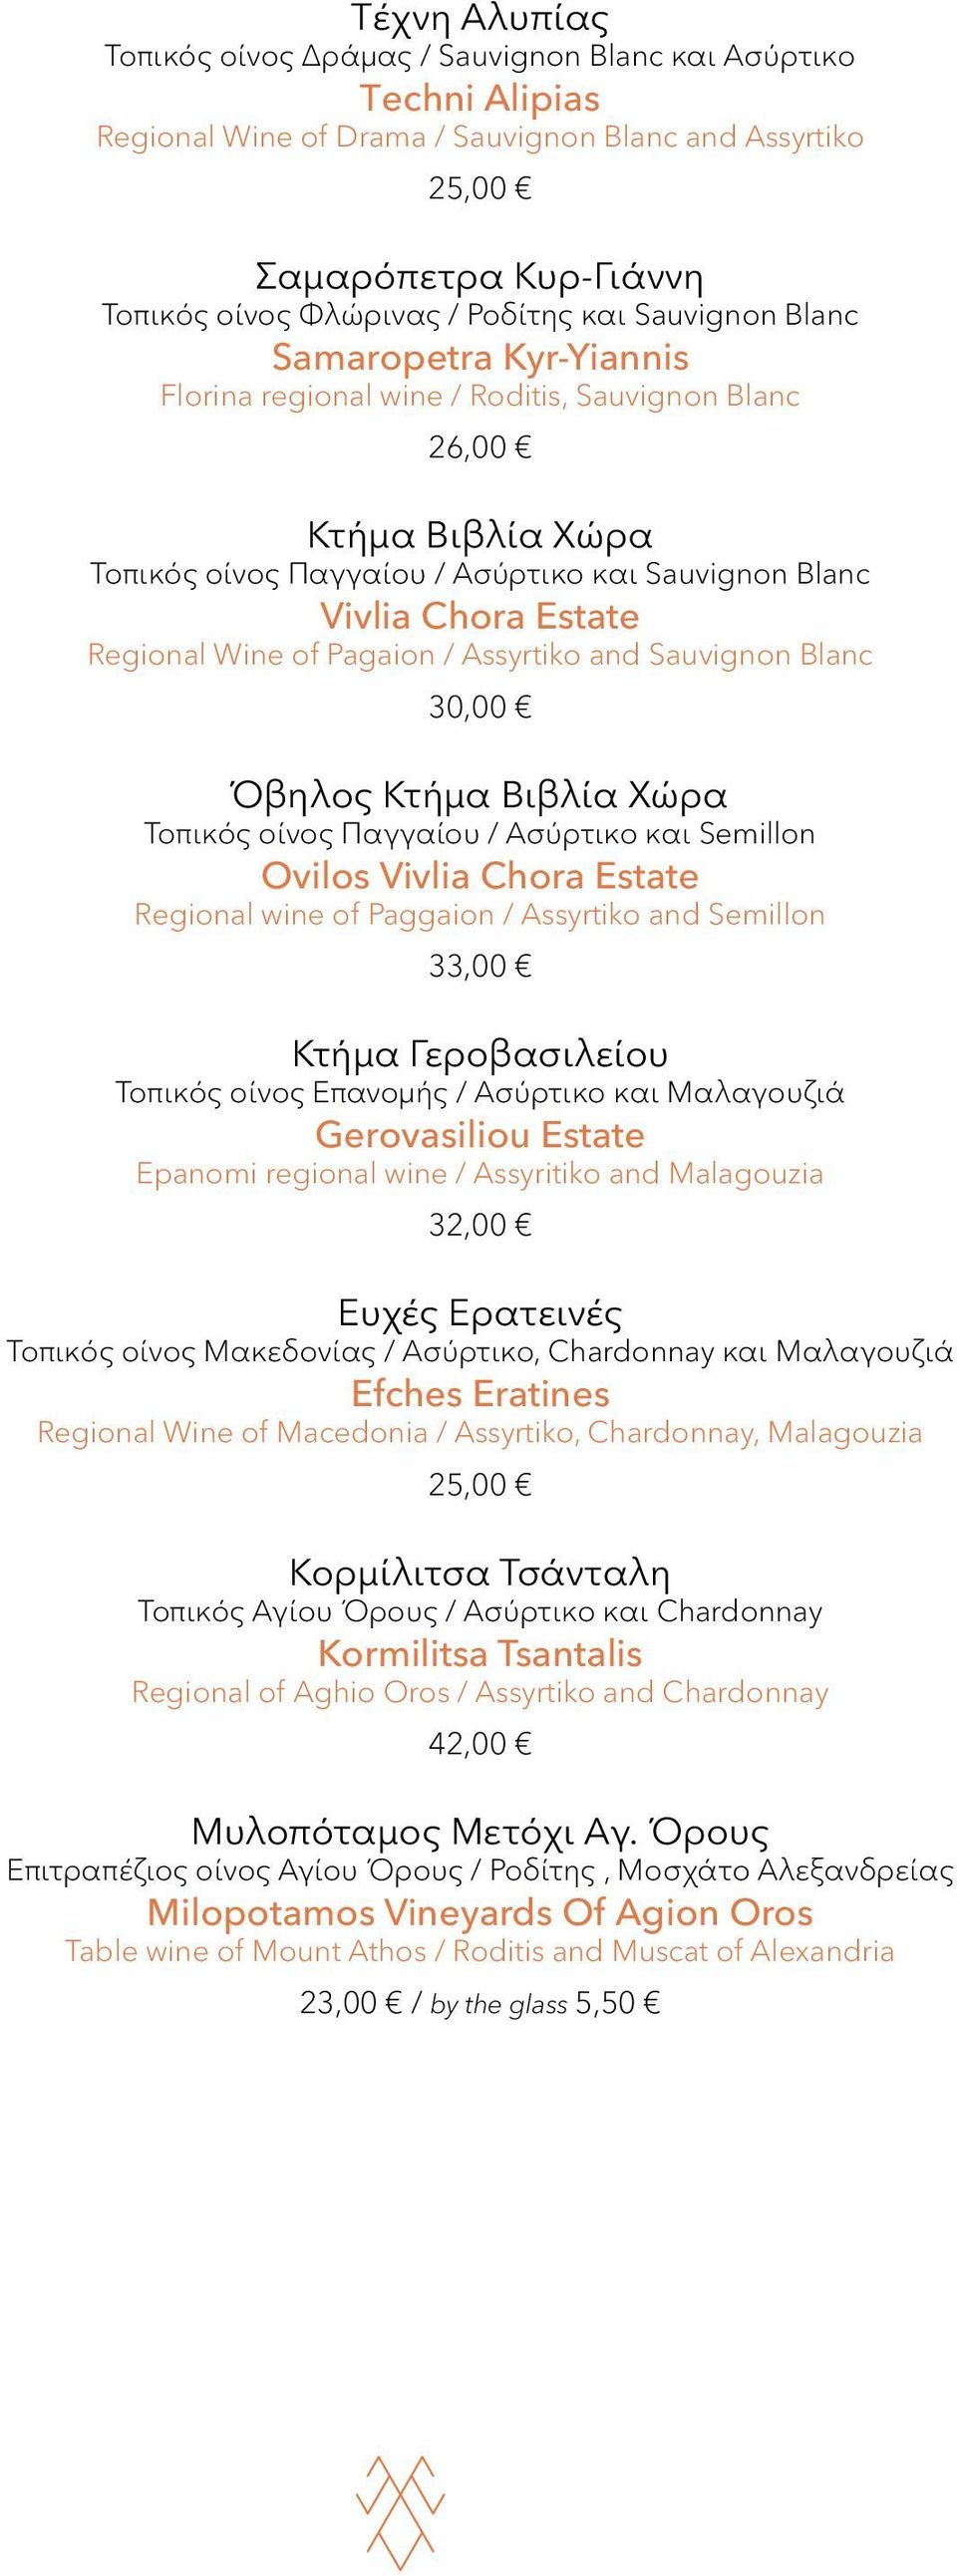 Wine of Pagaion / Assyrtiko and Sauvignon Blanc 30,00 Όβηλος Κτήμα Βιβλία Χώρα Τοπικός οίνος Παγγαίου / Ασύρτικο και Semillon Ovilos Vivlia Chora Estate Regional wine of Paggaion / Assyrtiko and